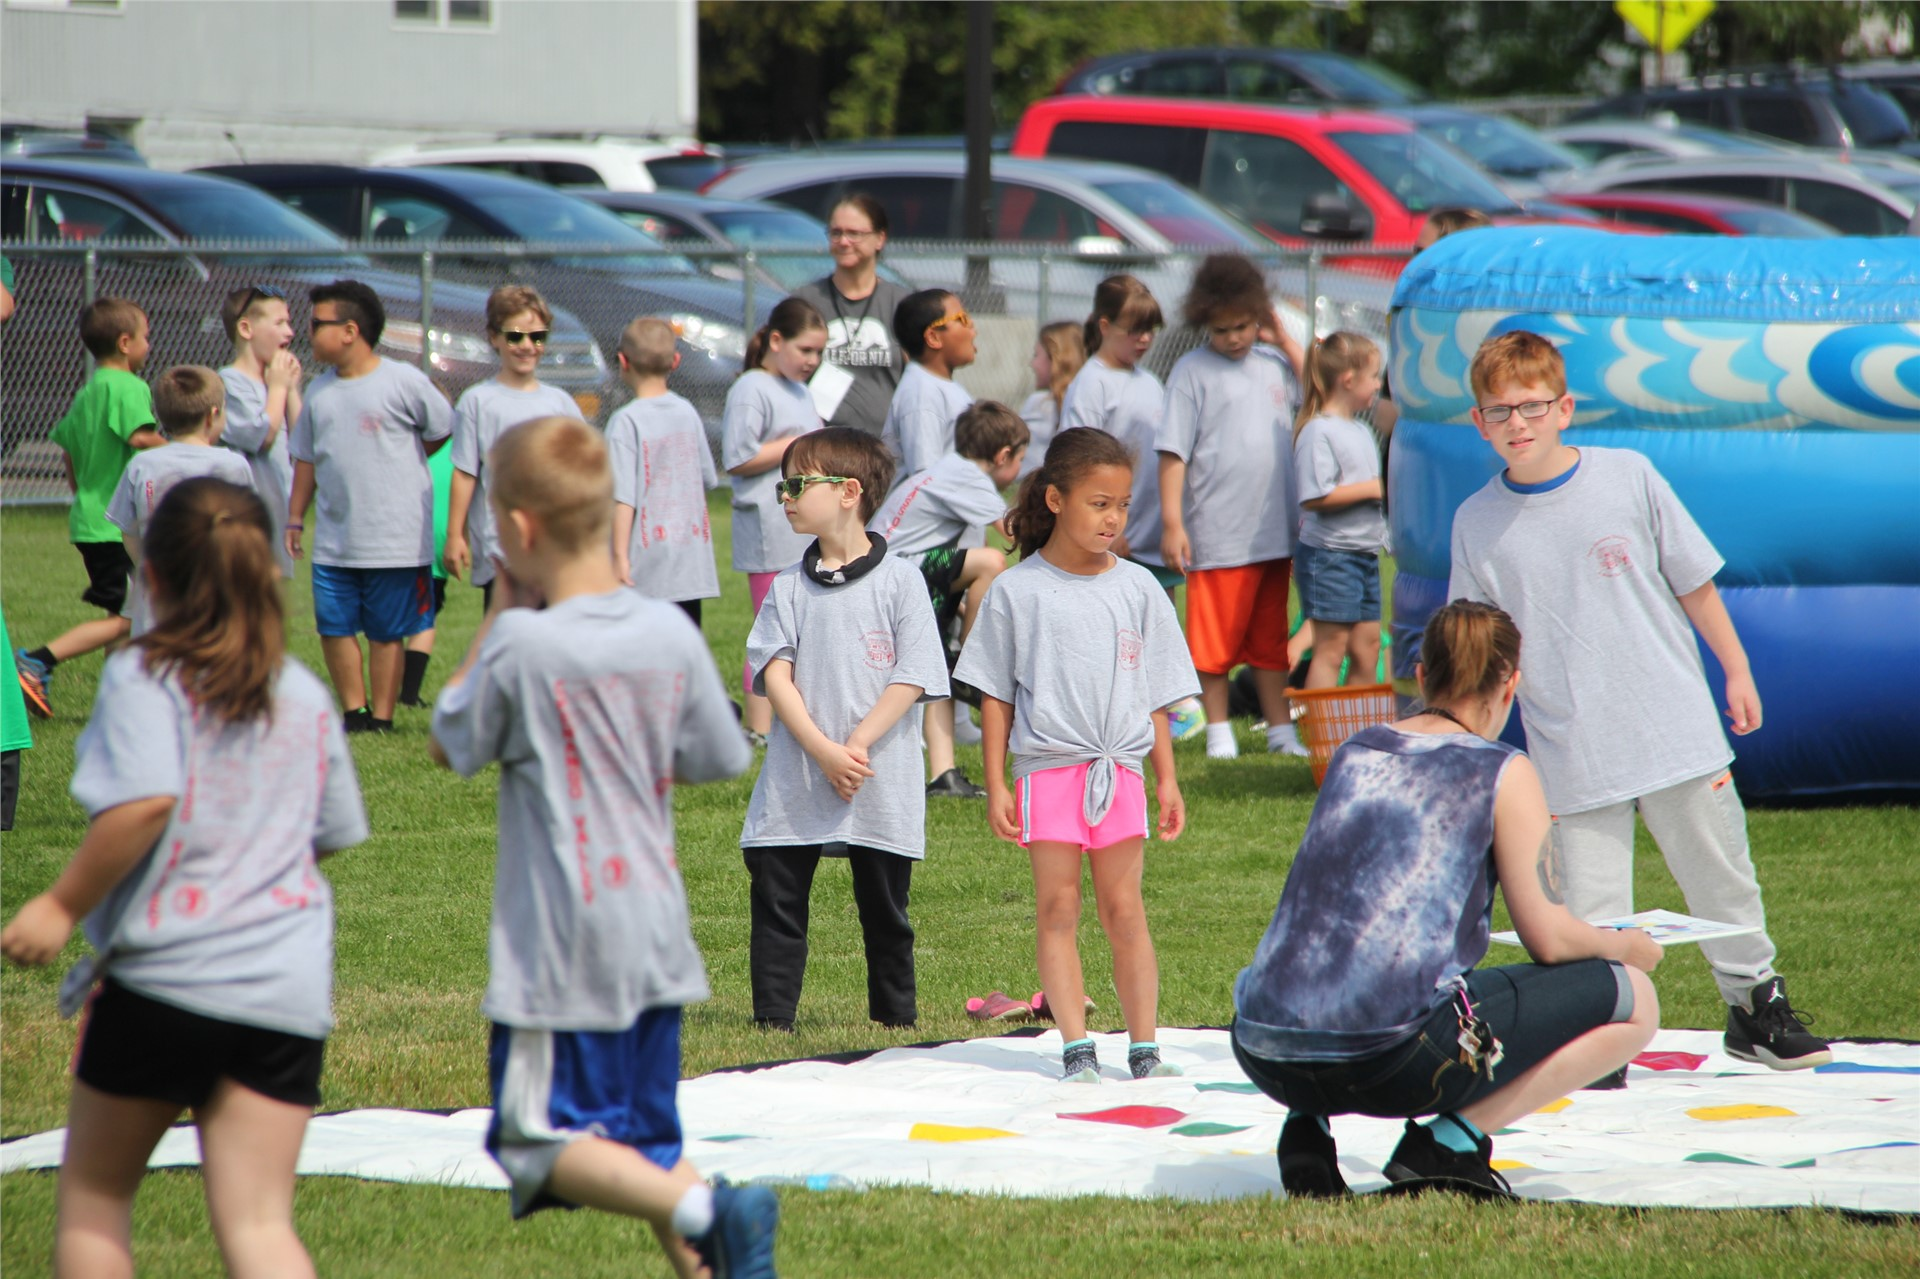 far shot of children playing twister and standing